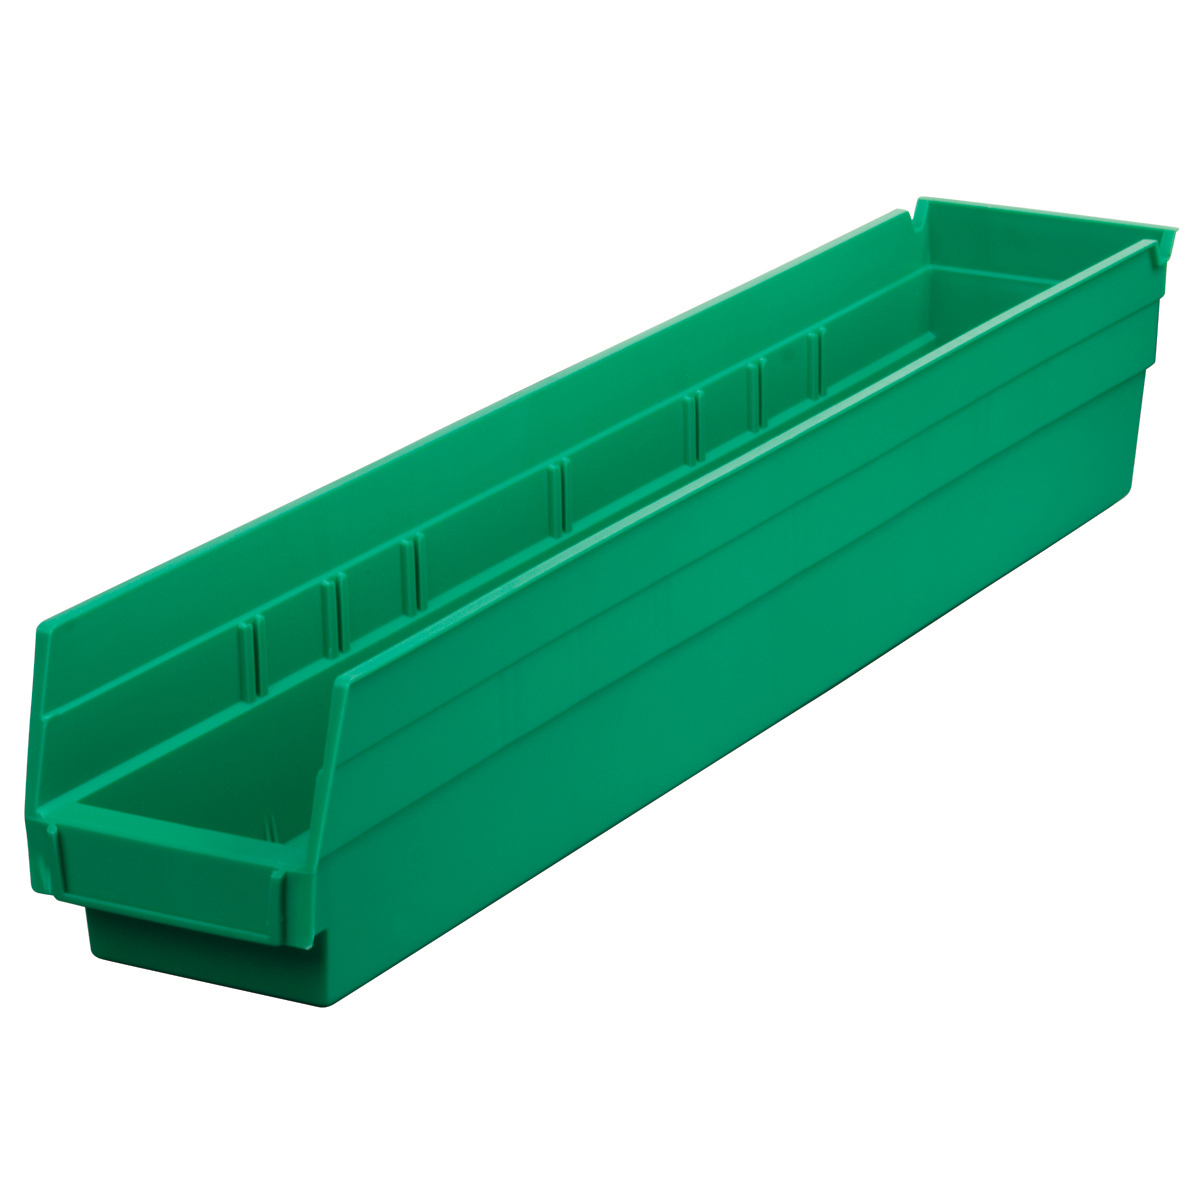 Shelf Bin 23-5/8 x 4-1/8 x 4, Green (30124GREEN).  This item sold in carton quantities of 12.